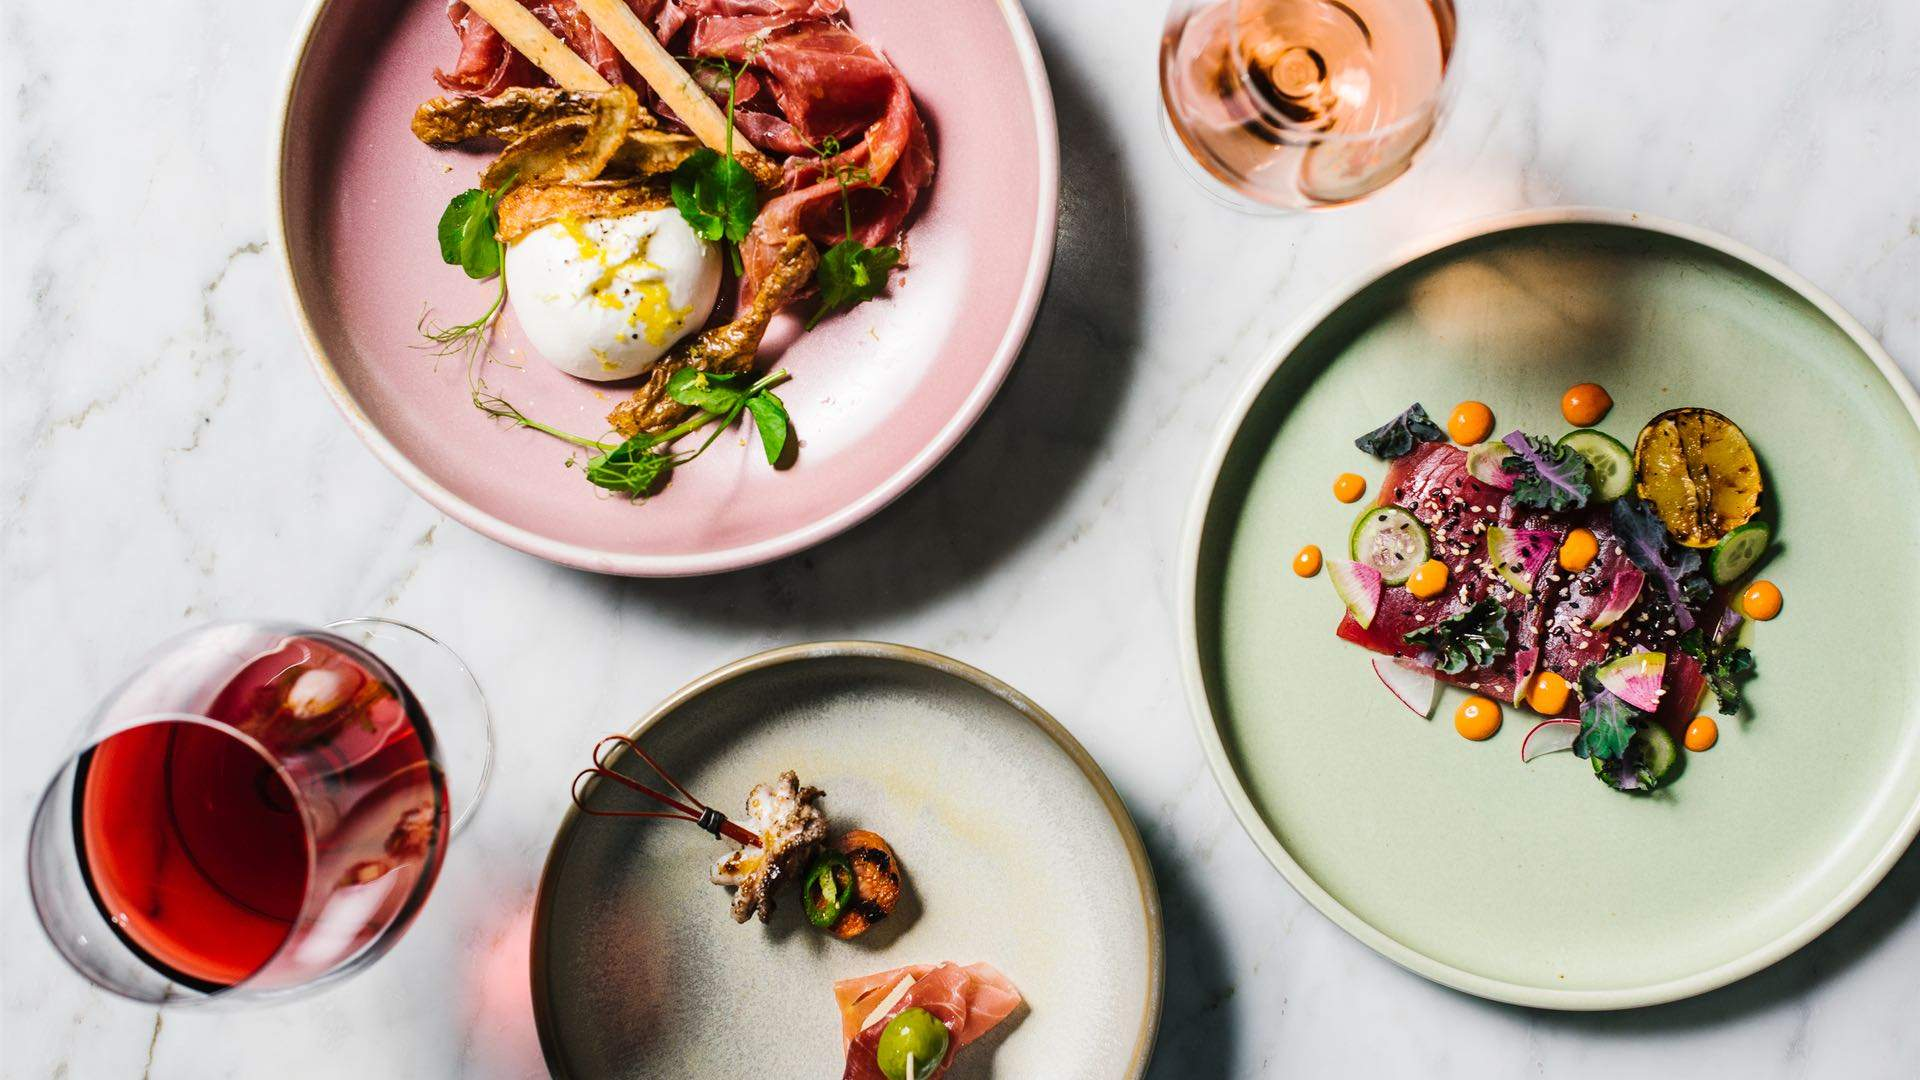 Mediterranean-Inspired Wine Bar Mister Percy Is Opening in a Former Pyrmont Wool Store